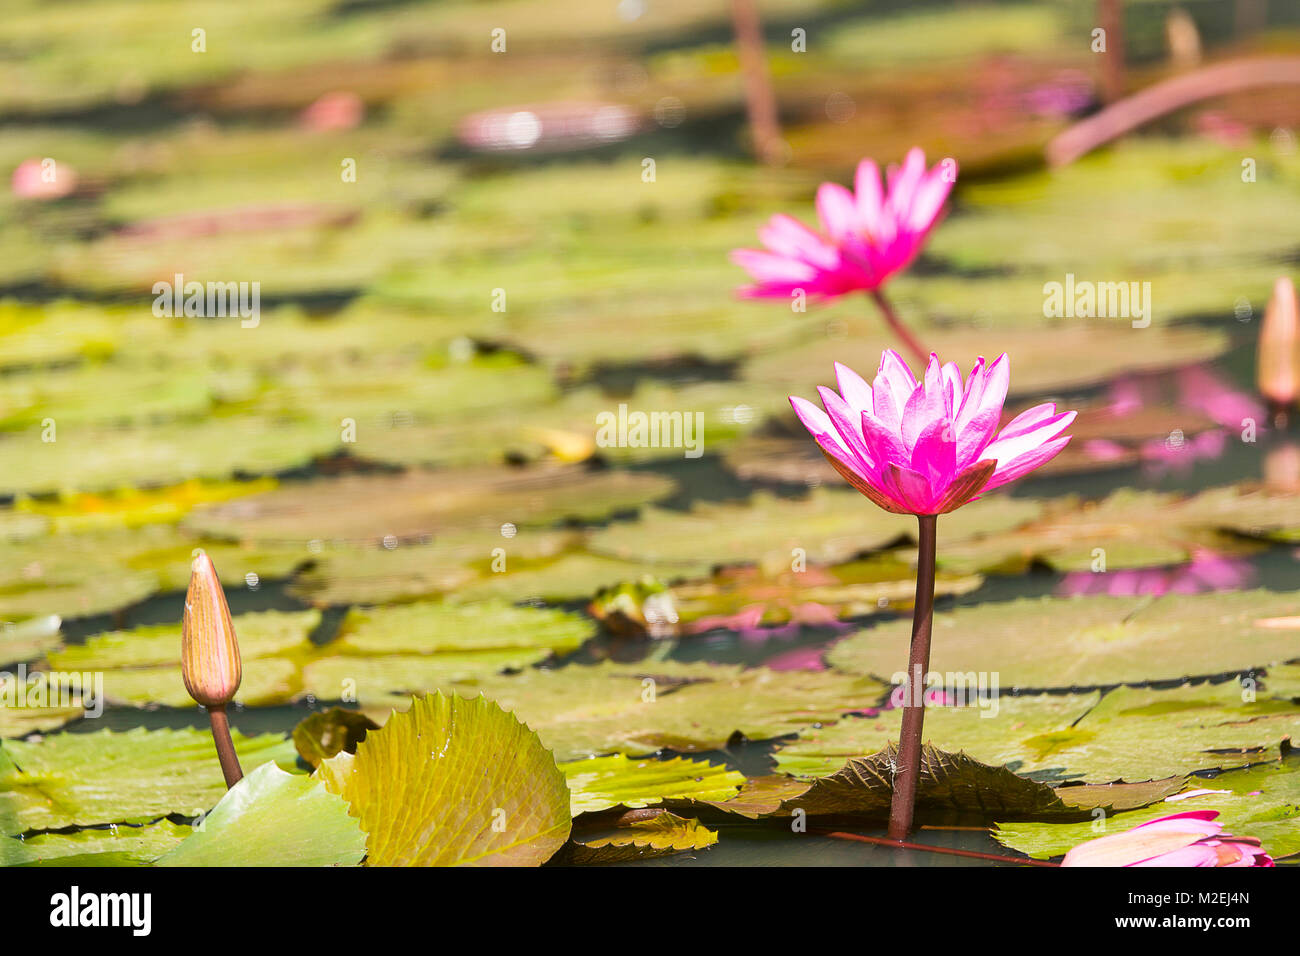 Pink Water Lily Or Pink Lotus Kumud In Sanskrit Native To India